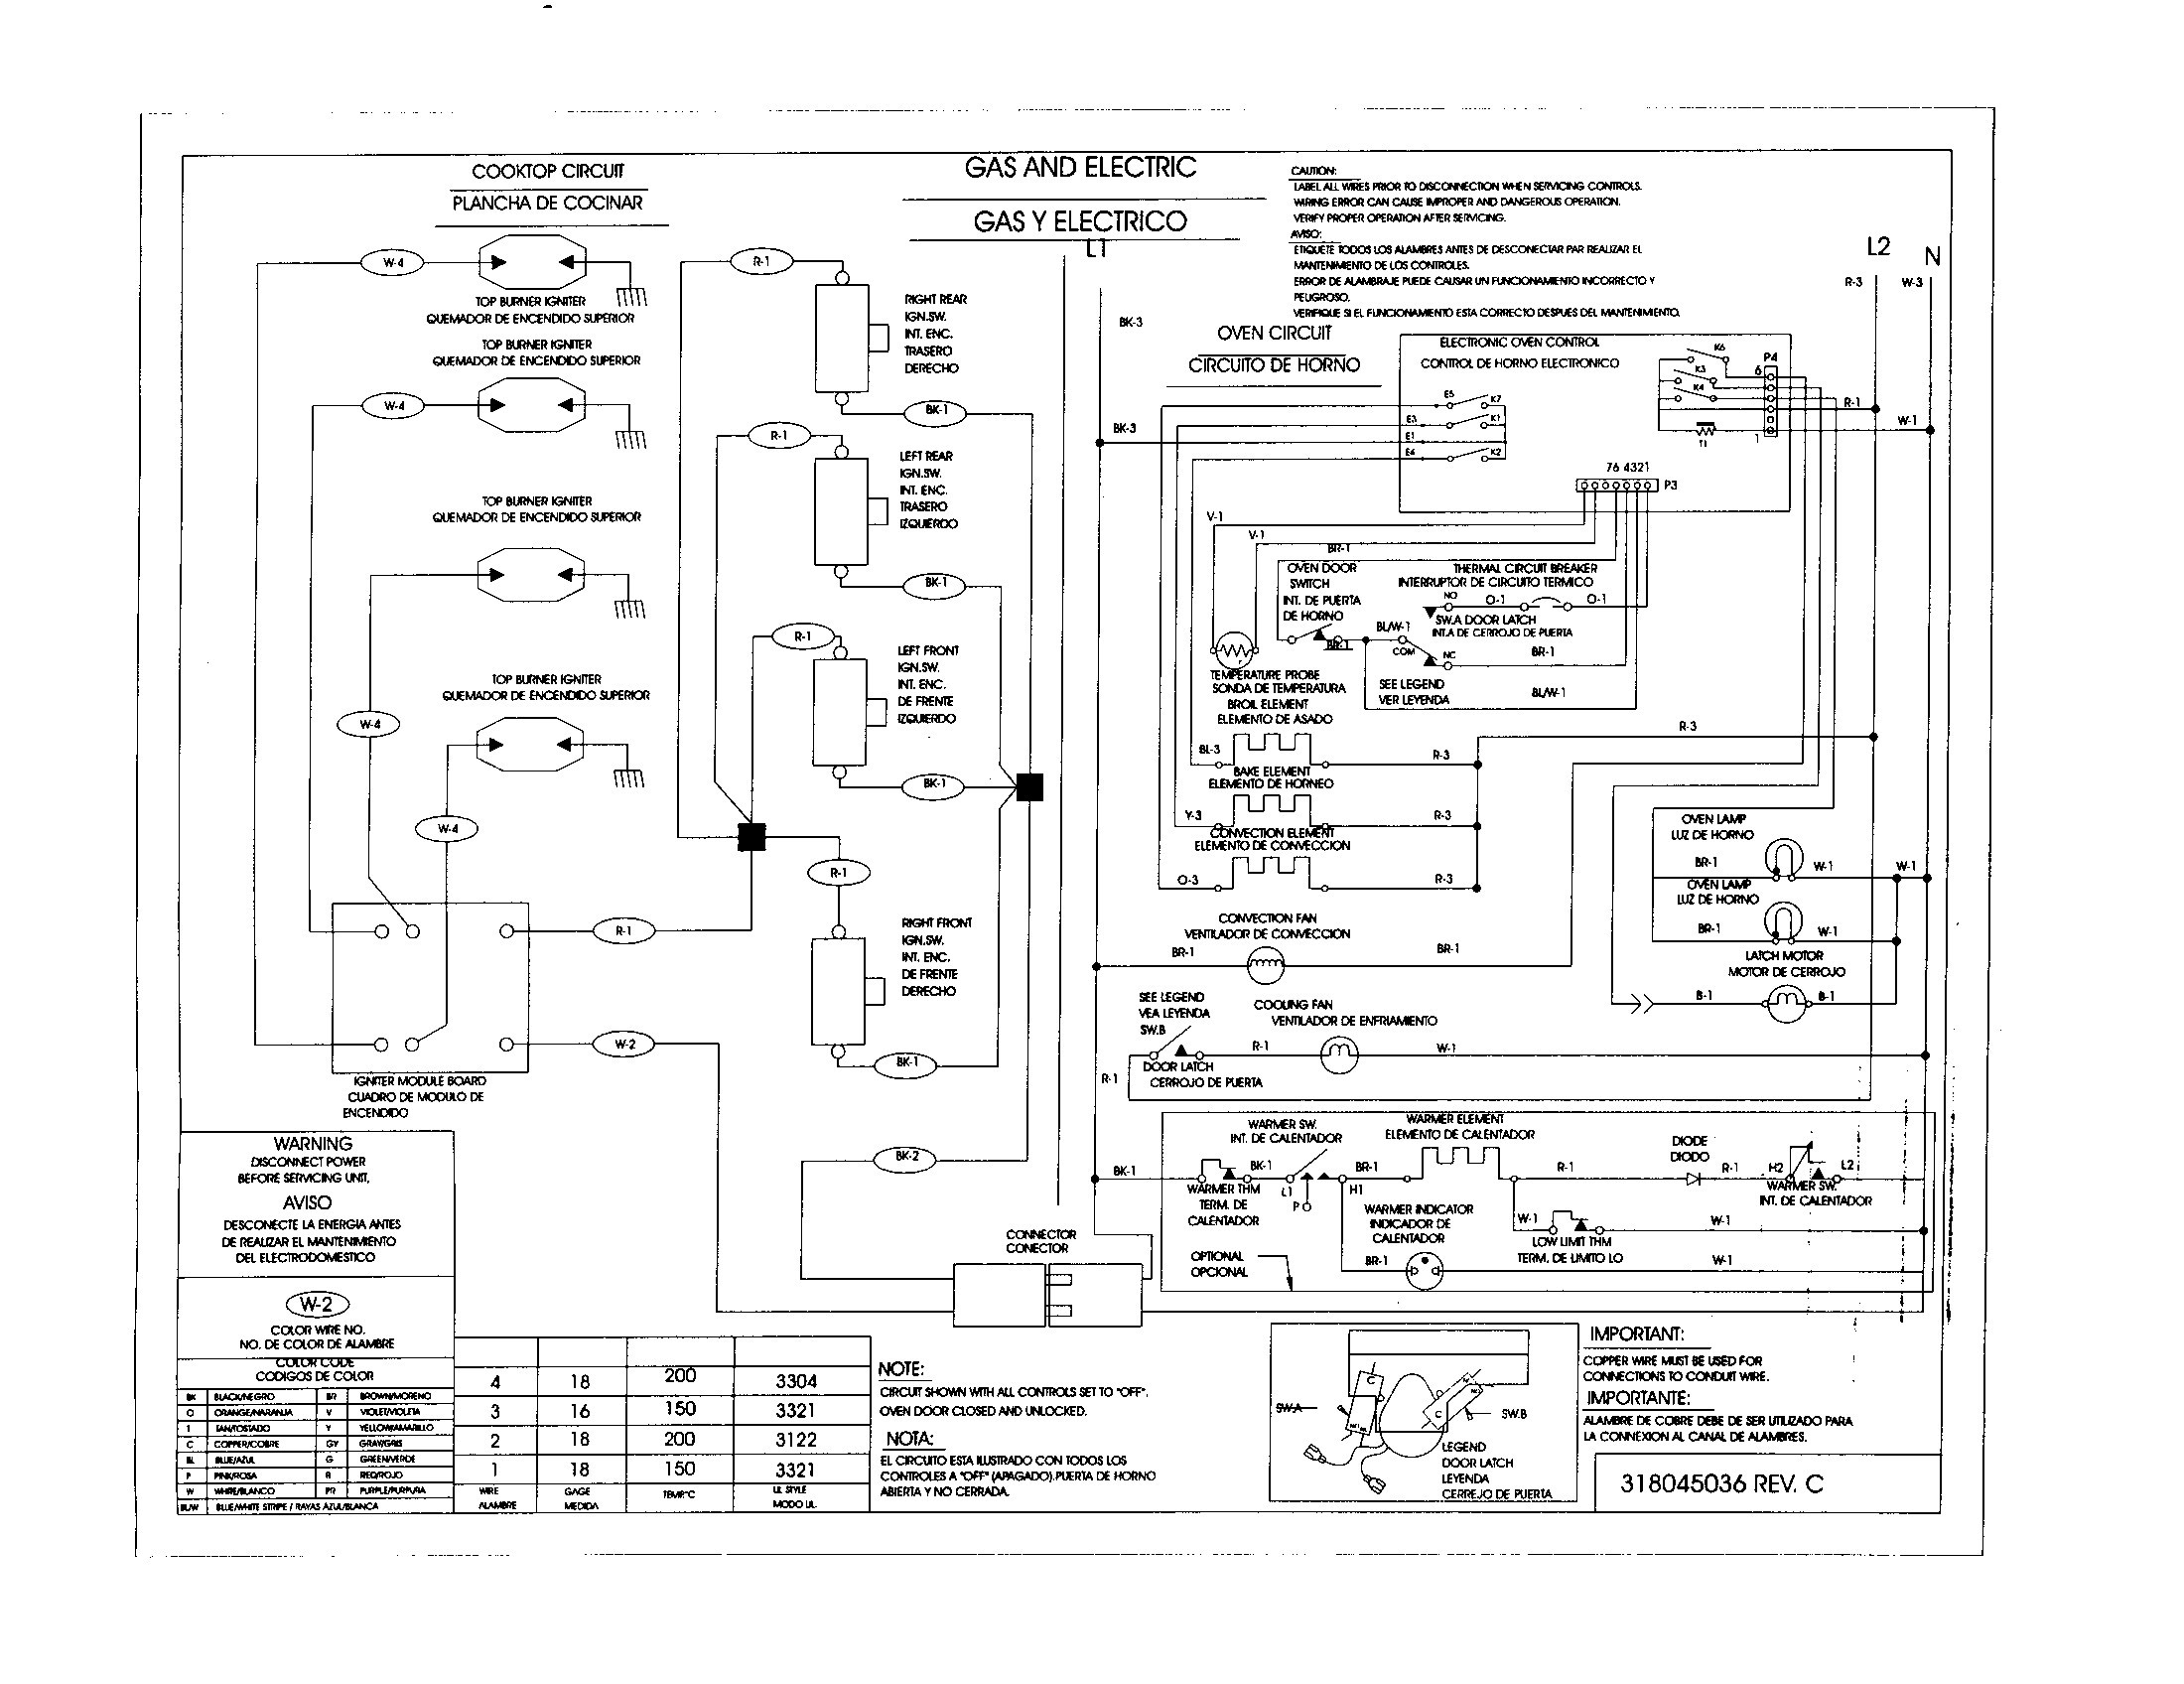 Outstanding Whirlpool Dishwasher Electrical Diagram Wiring Diagram Wiring Cloud Cosmuggs Outletorg